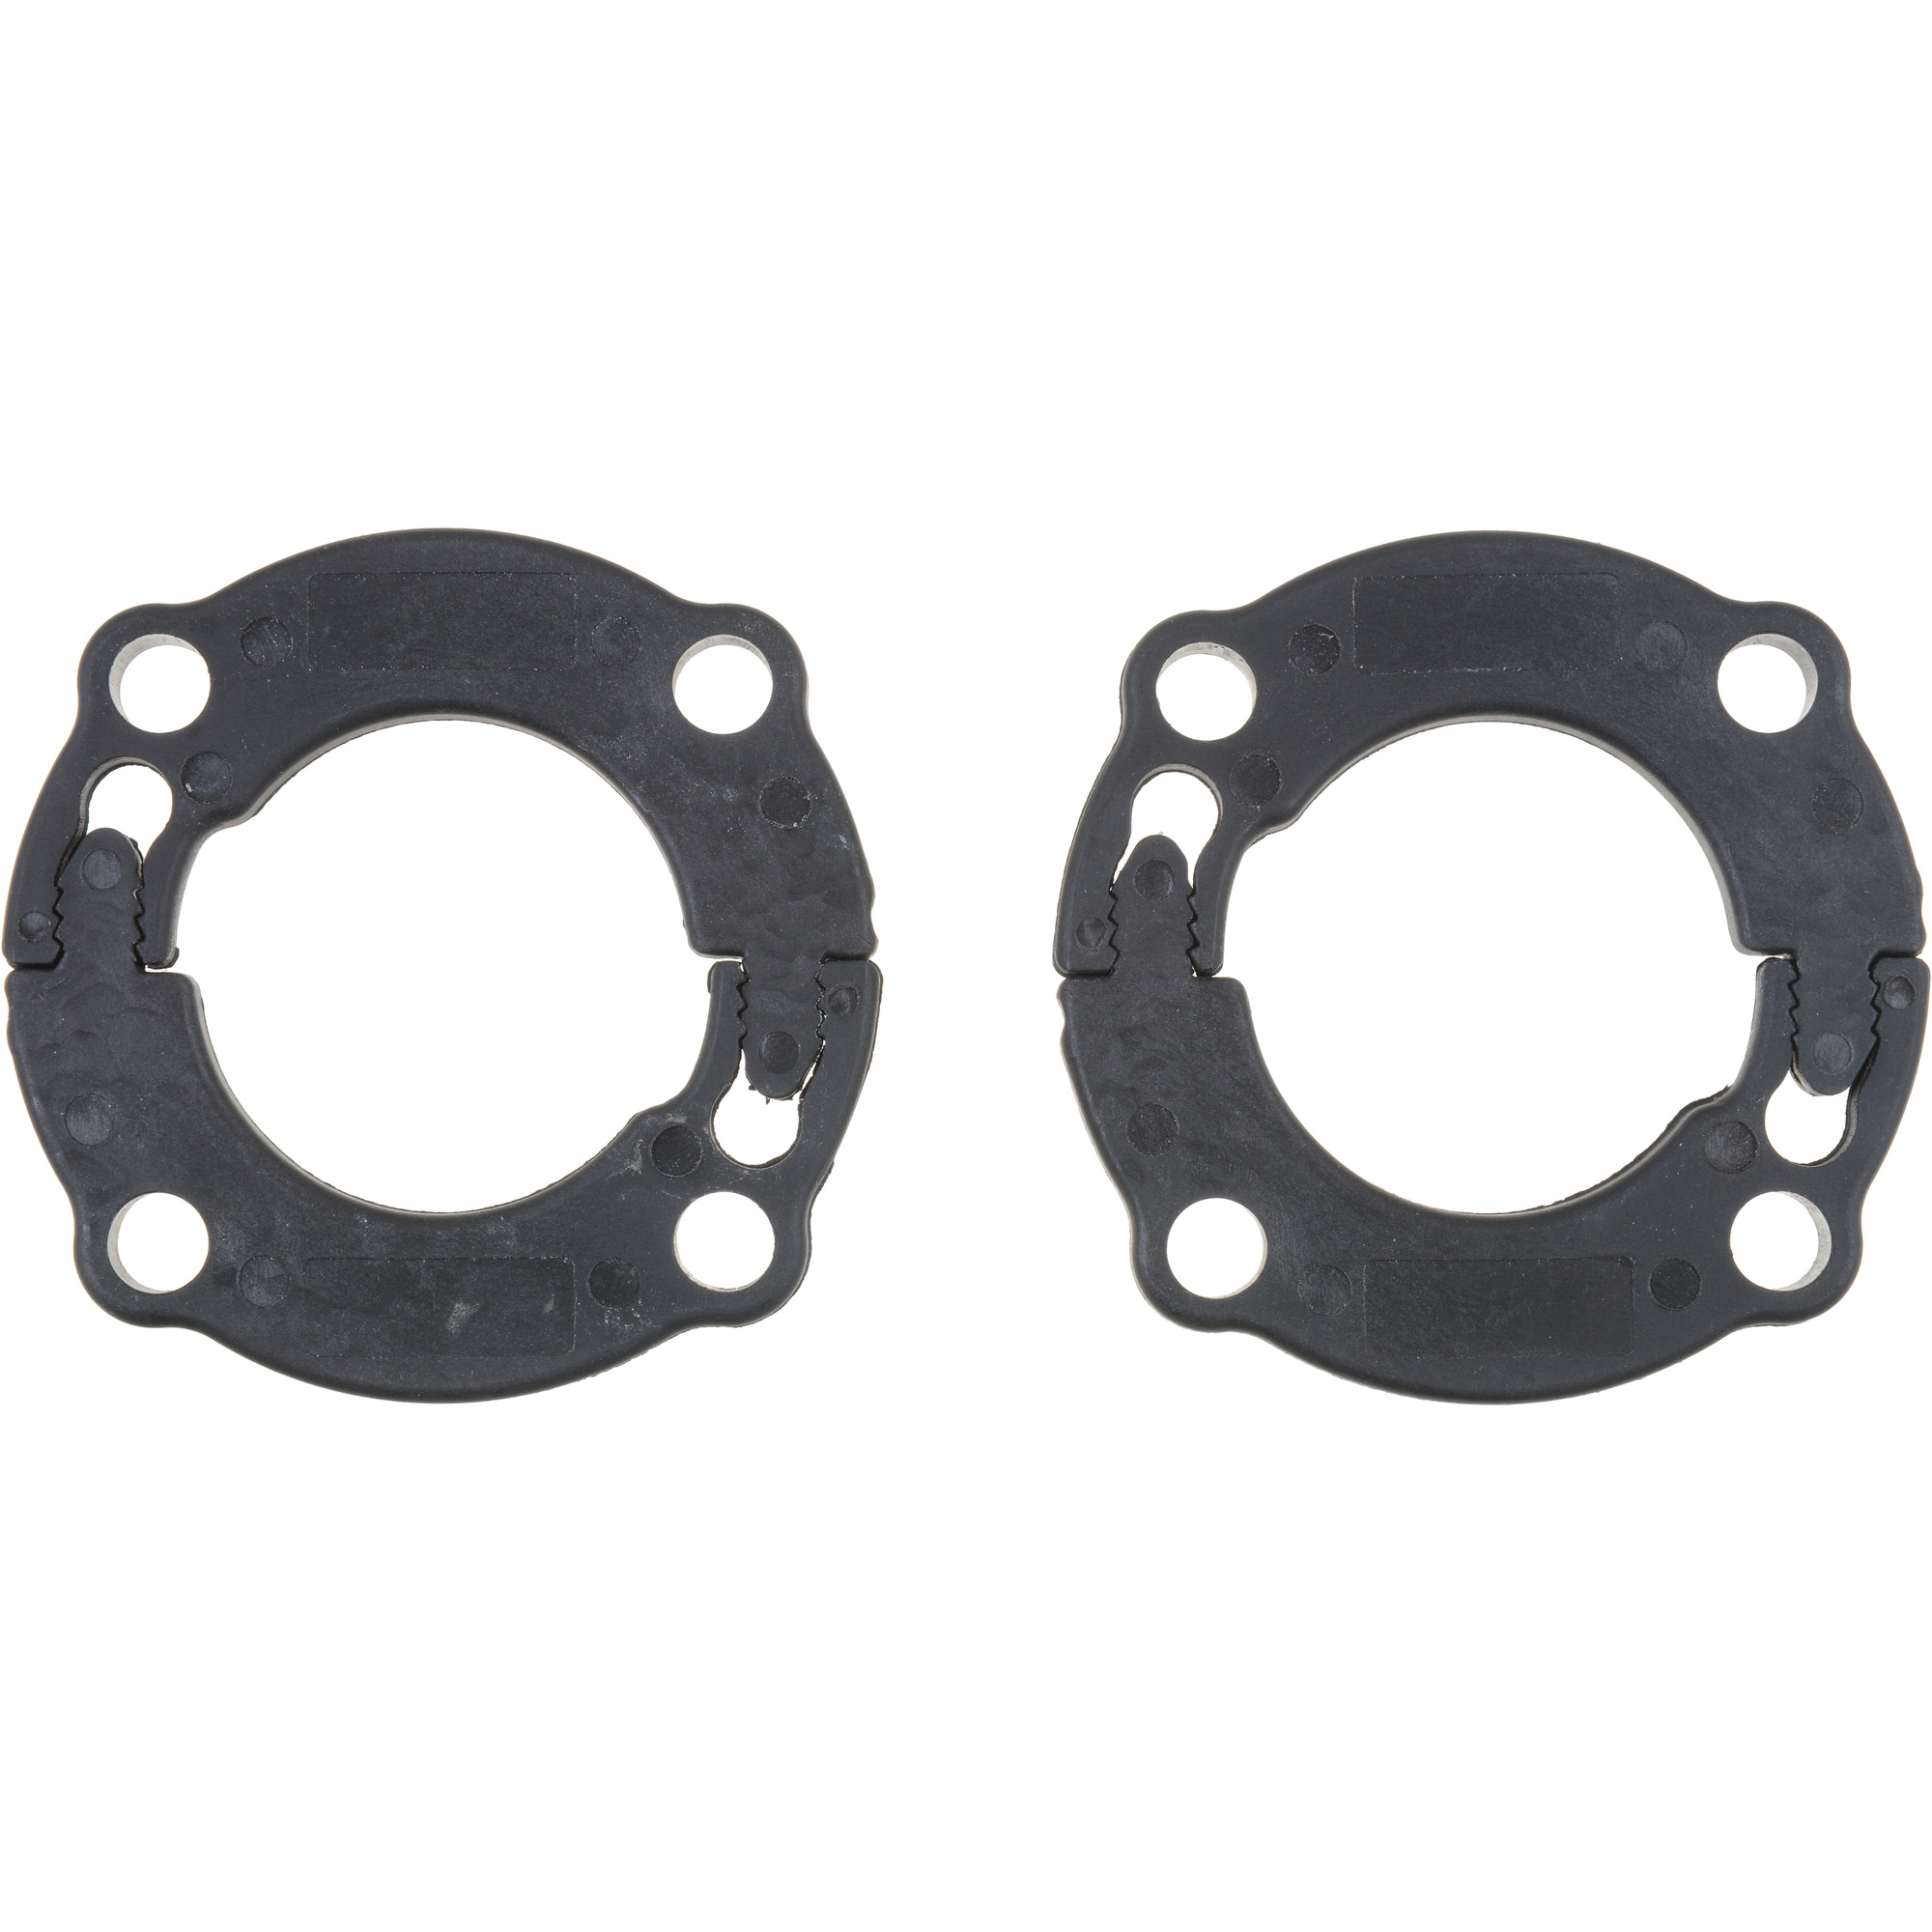 Suspension Strut Mount Retainer